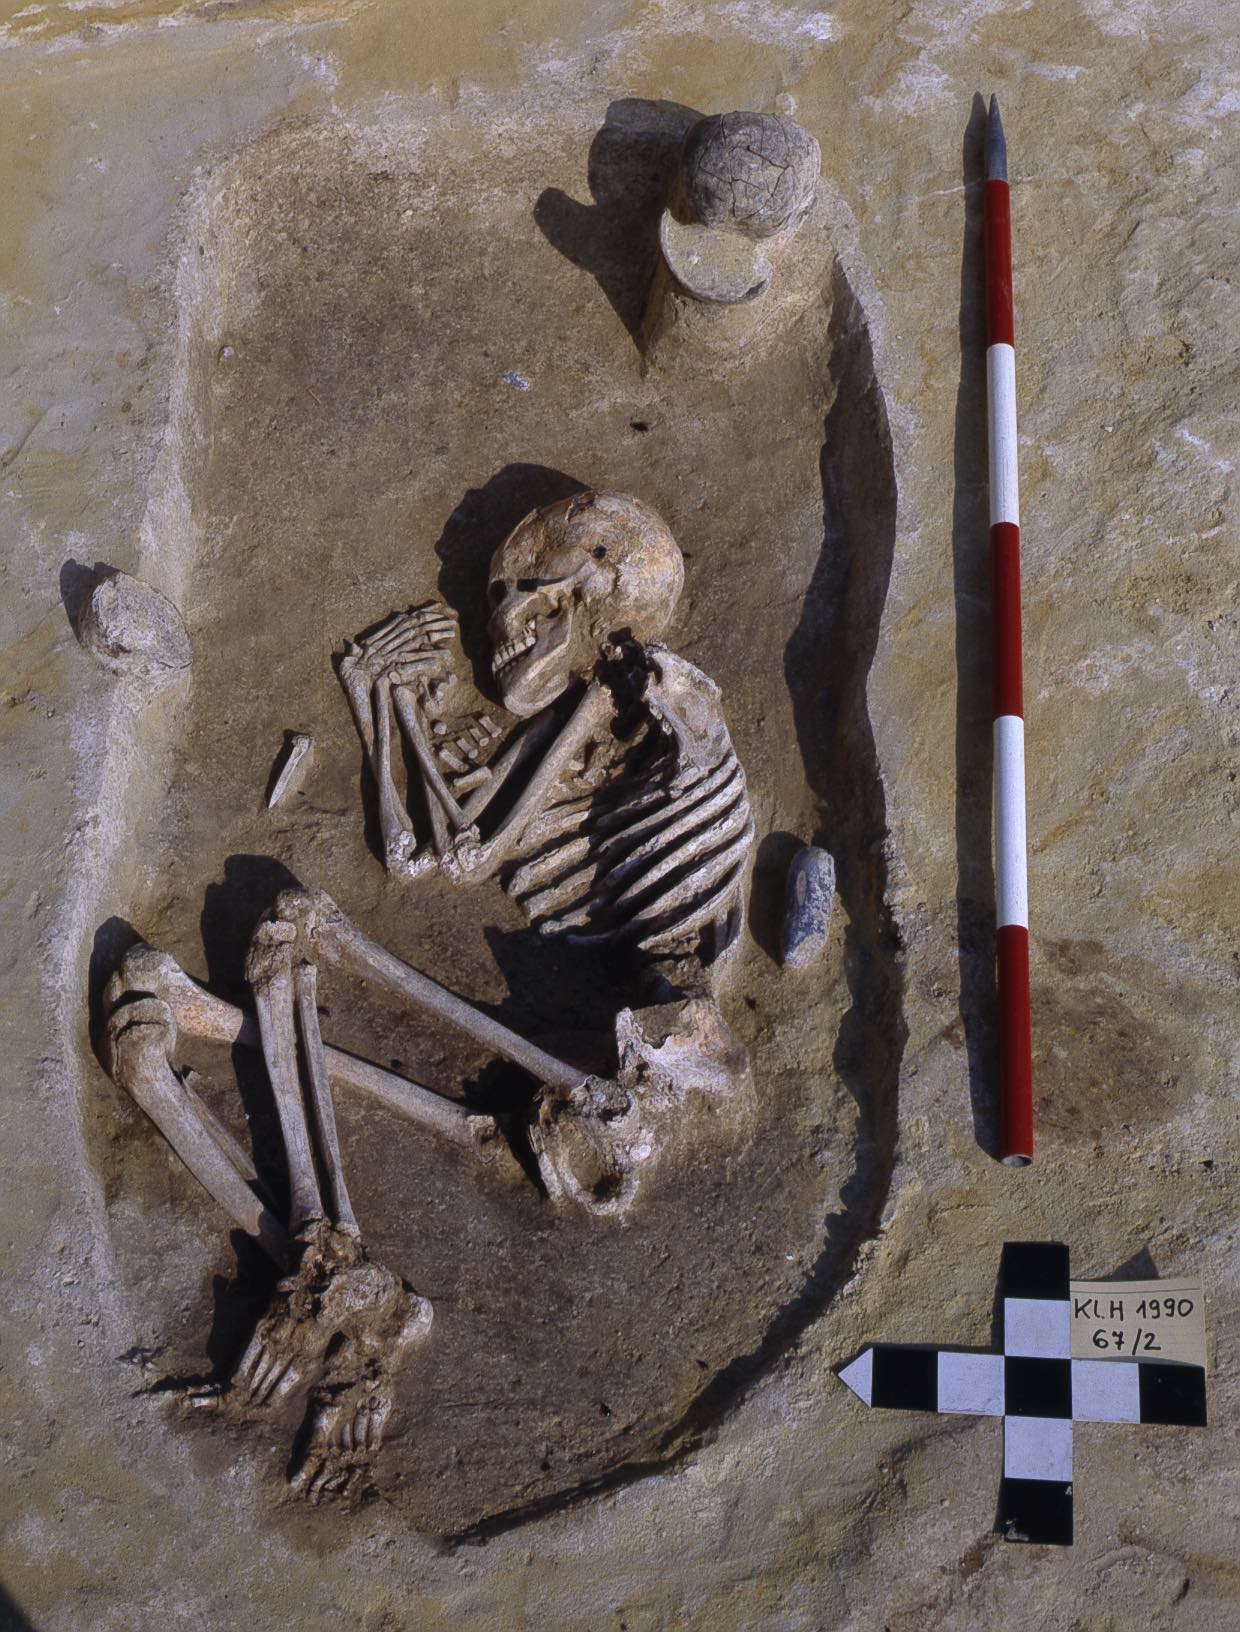 Image of an excavated neolithic skeleton